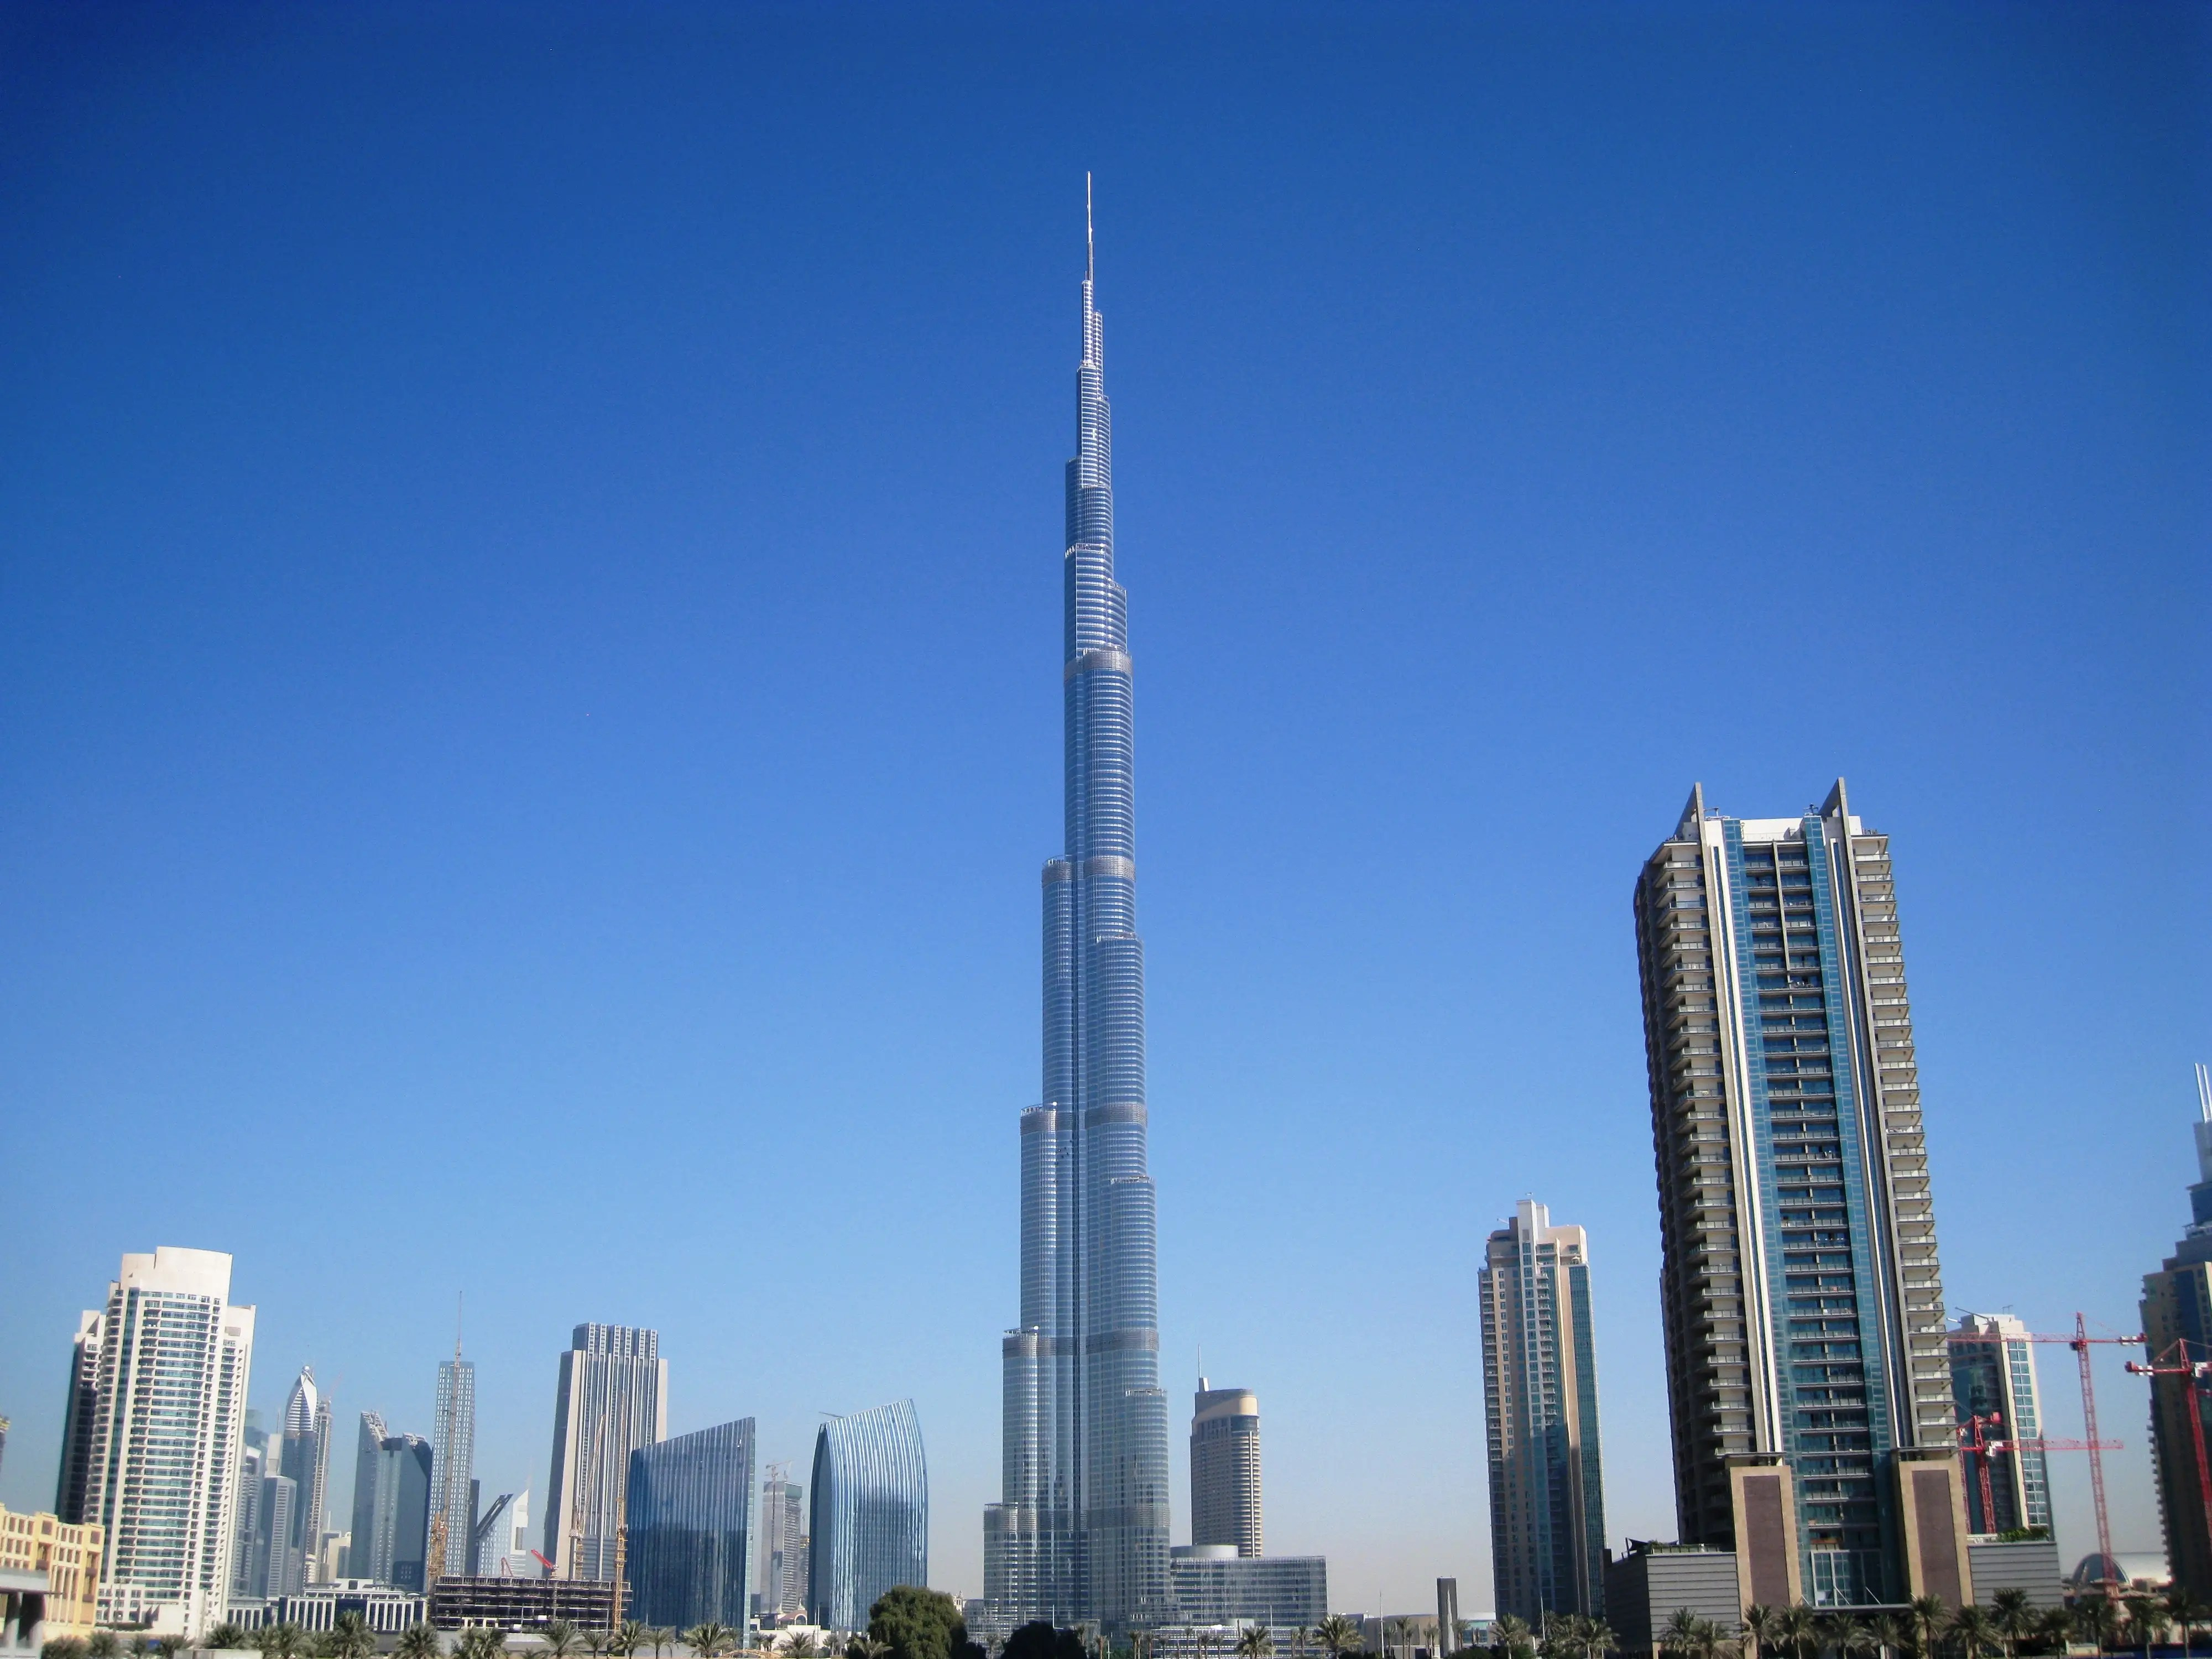 A History Of The World's Tallest Skyscrapers